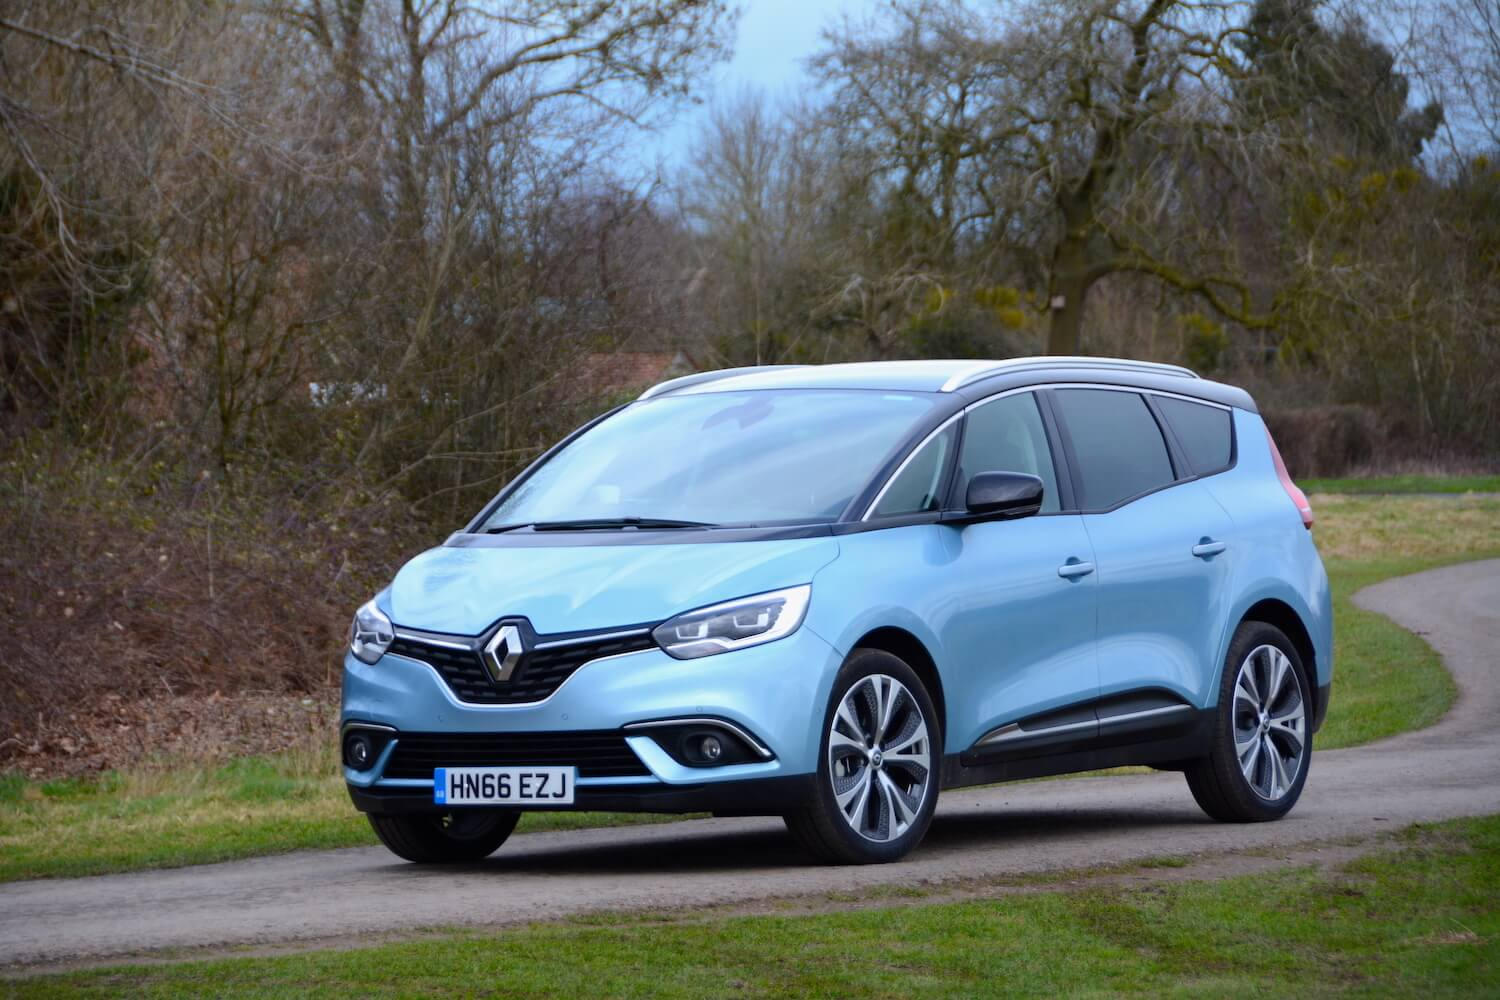 7 Seater Suv 2017 >> Renault Grand Scenic Review - GreenCarGuide.co.uk